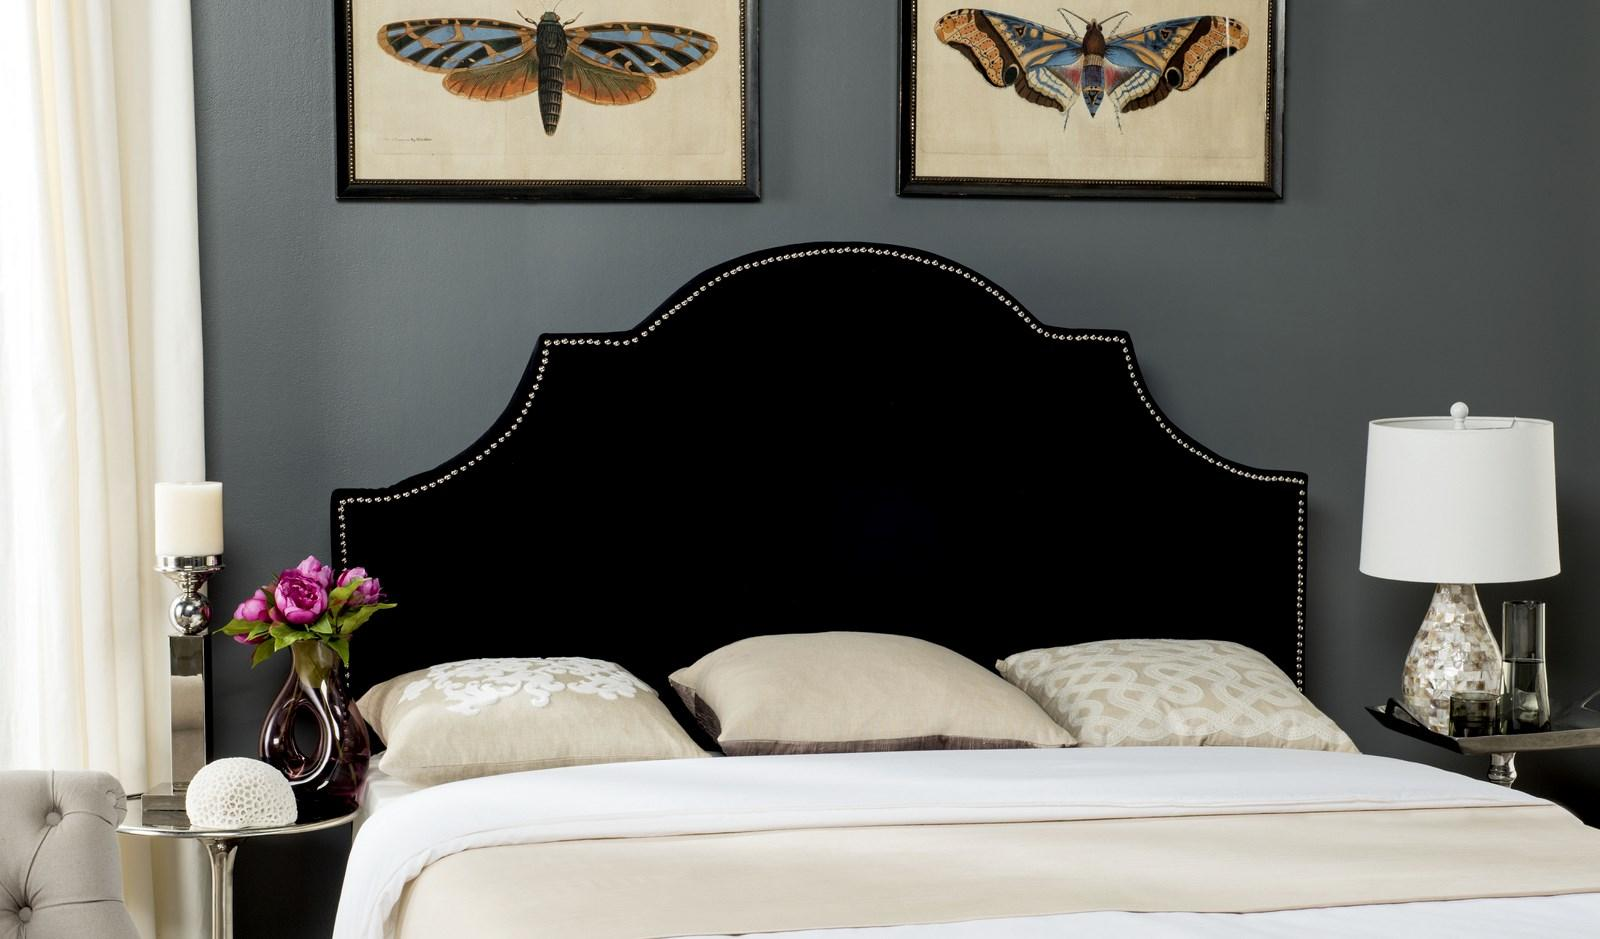 velvet for your platform also wooden and headboard with interior design fabric blue comforter blu bed excellent decoration combined bedside white stool ideas classy brown table bedroom tufted black